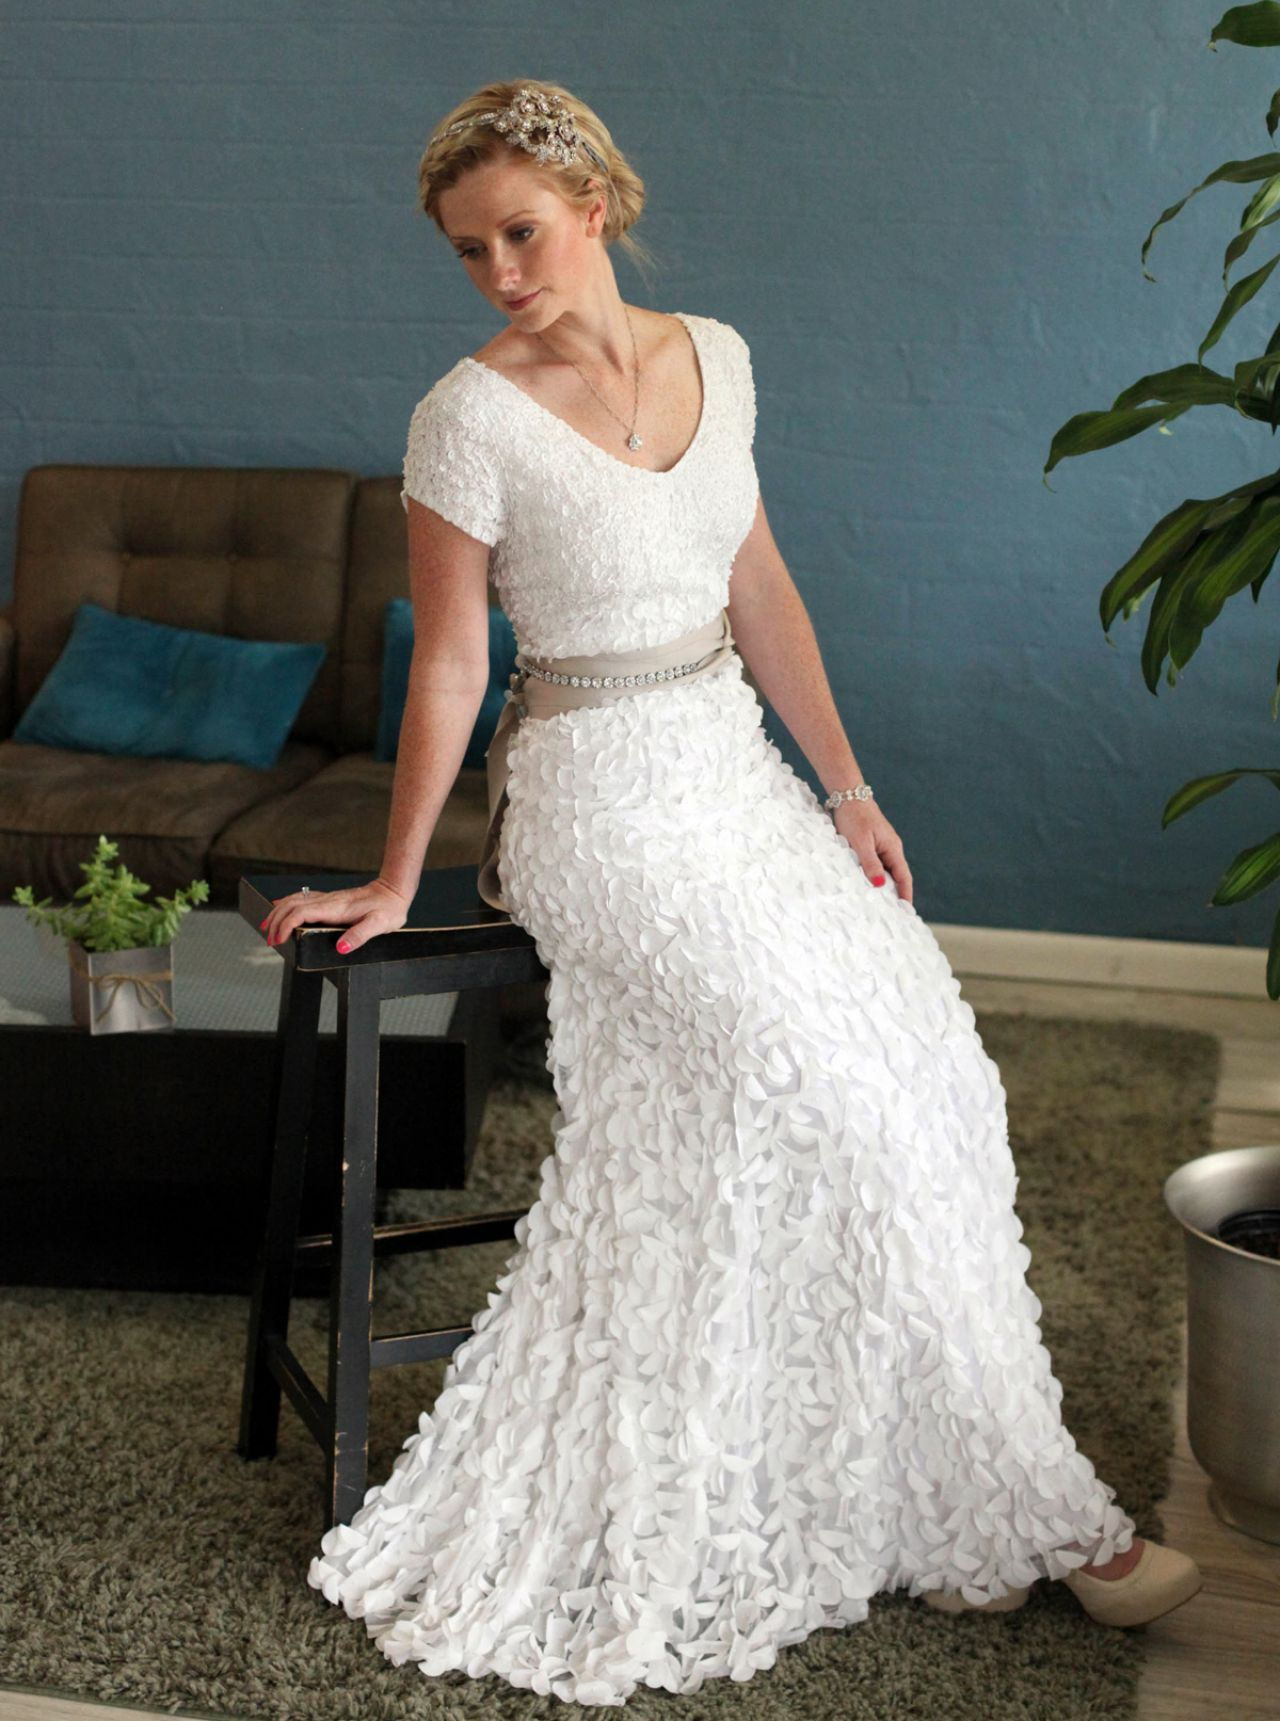 Wedding dresses for older brides second marriage pinteres for Bridal dresses for second weddings